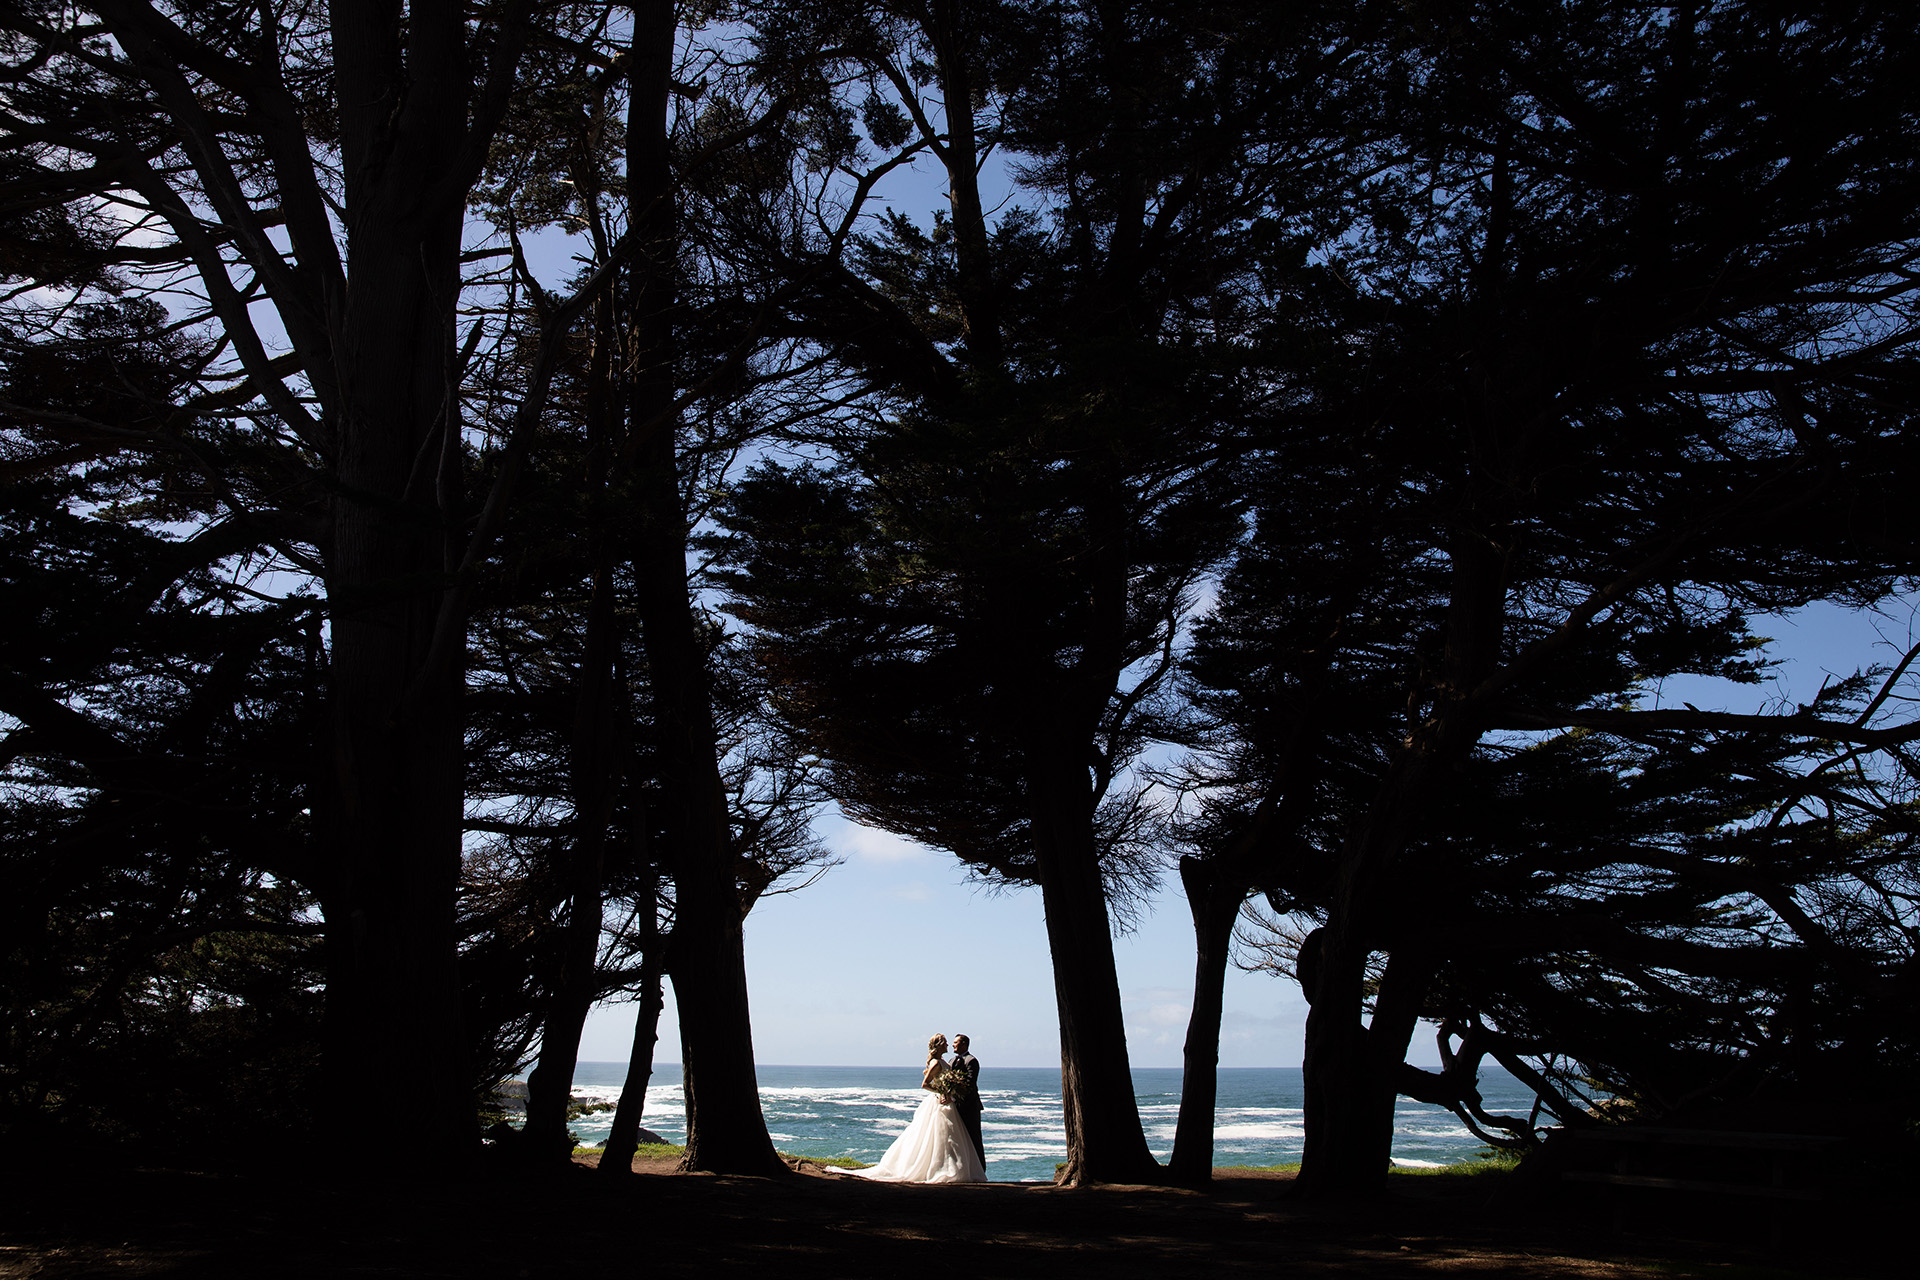 CA Elopement Beach Portrait | a portrait session alone while overlooking the Pacific ocean